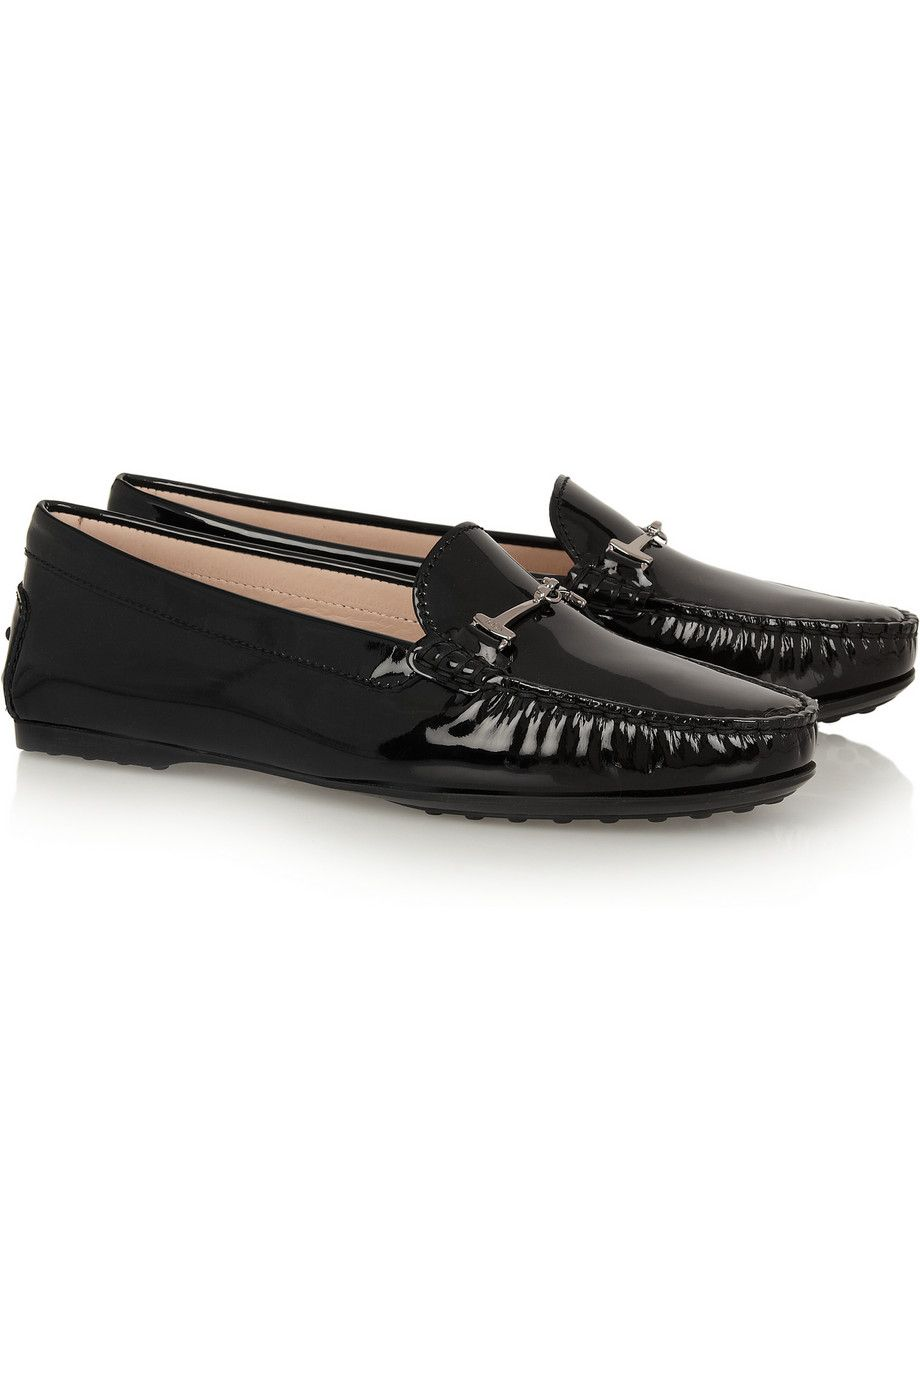 bdafeb2e4e Tod's City Gommino Embellished Patent Leather Loafers | My Style ...